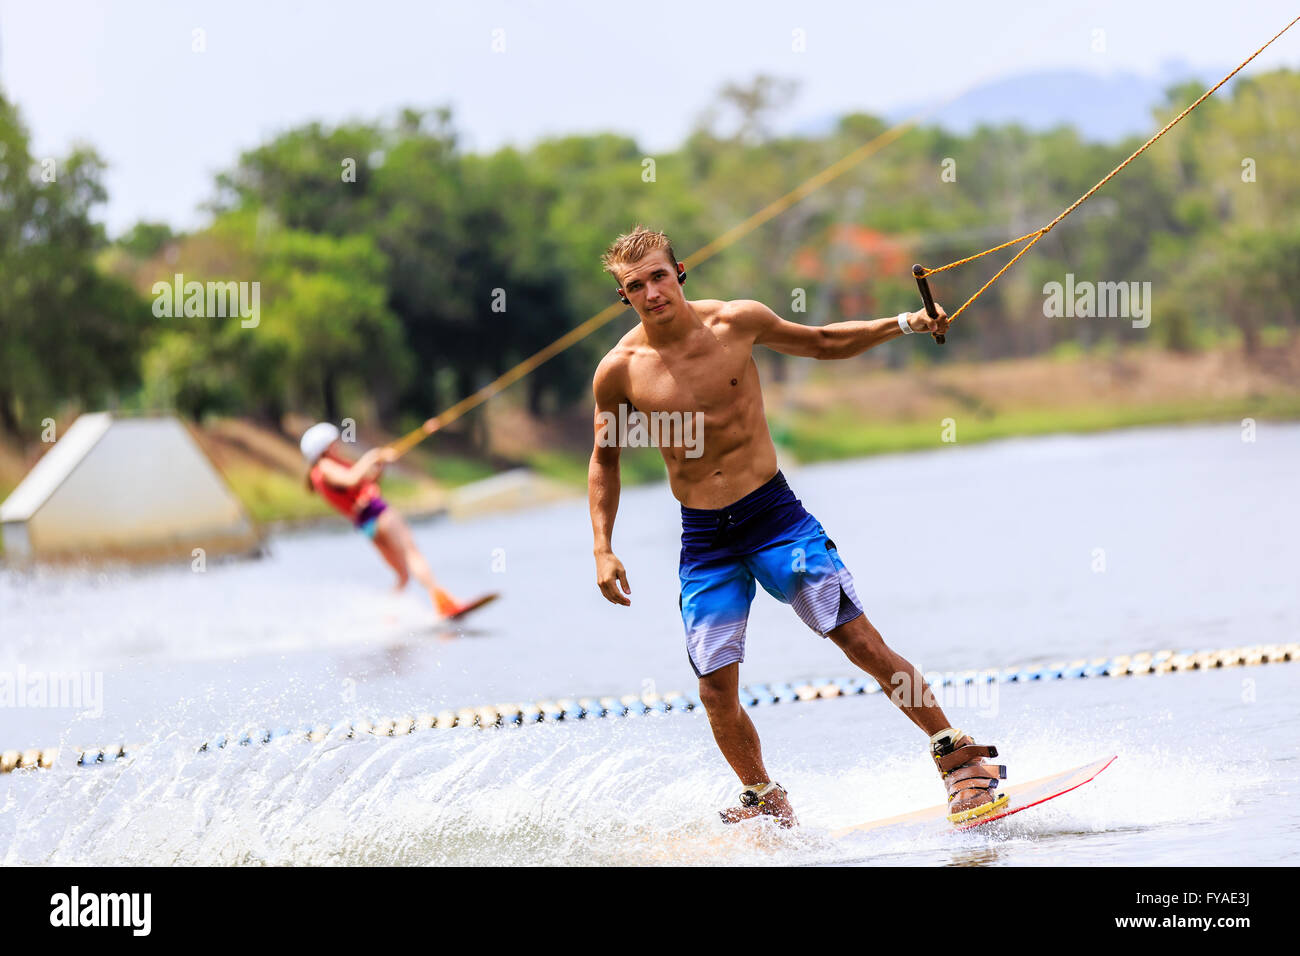 Man Wakeboarding in action. Phuket, Thailand - Stock Image